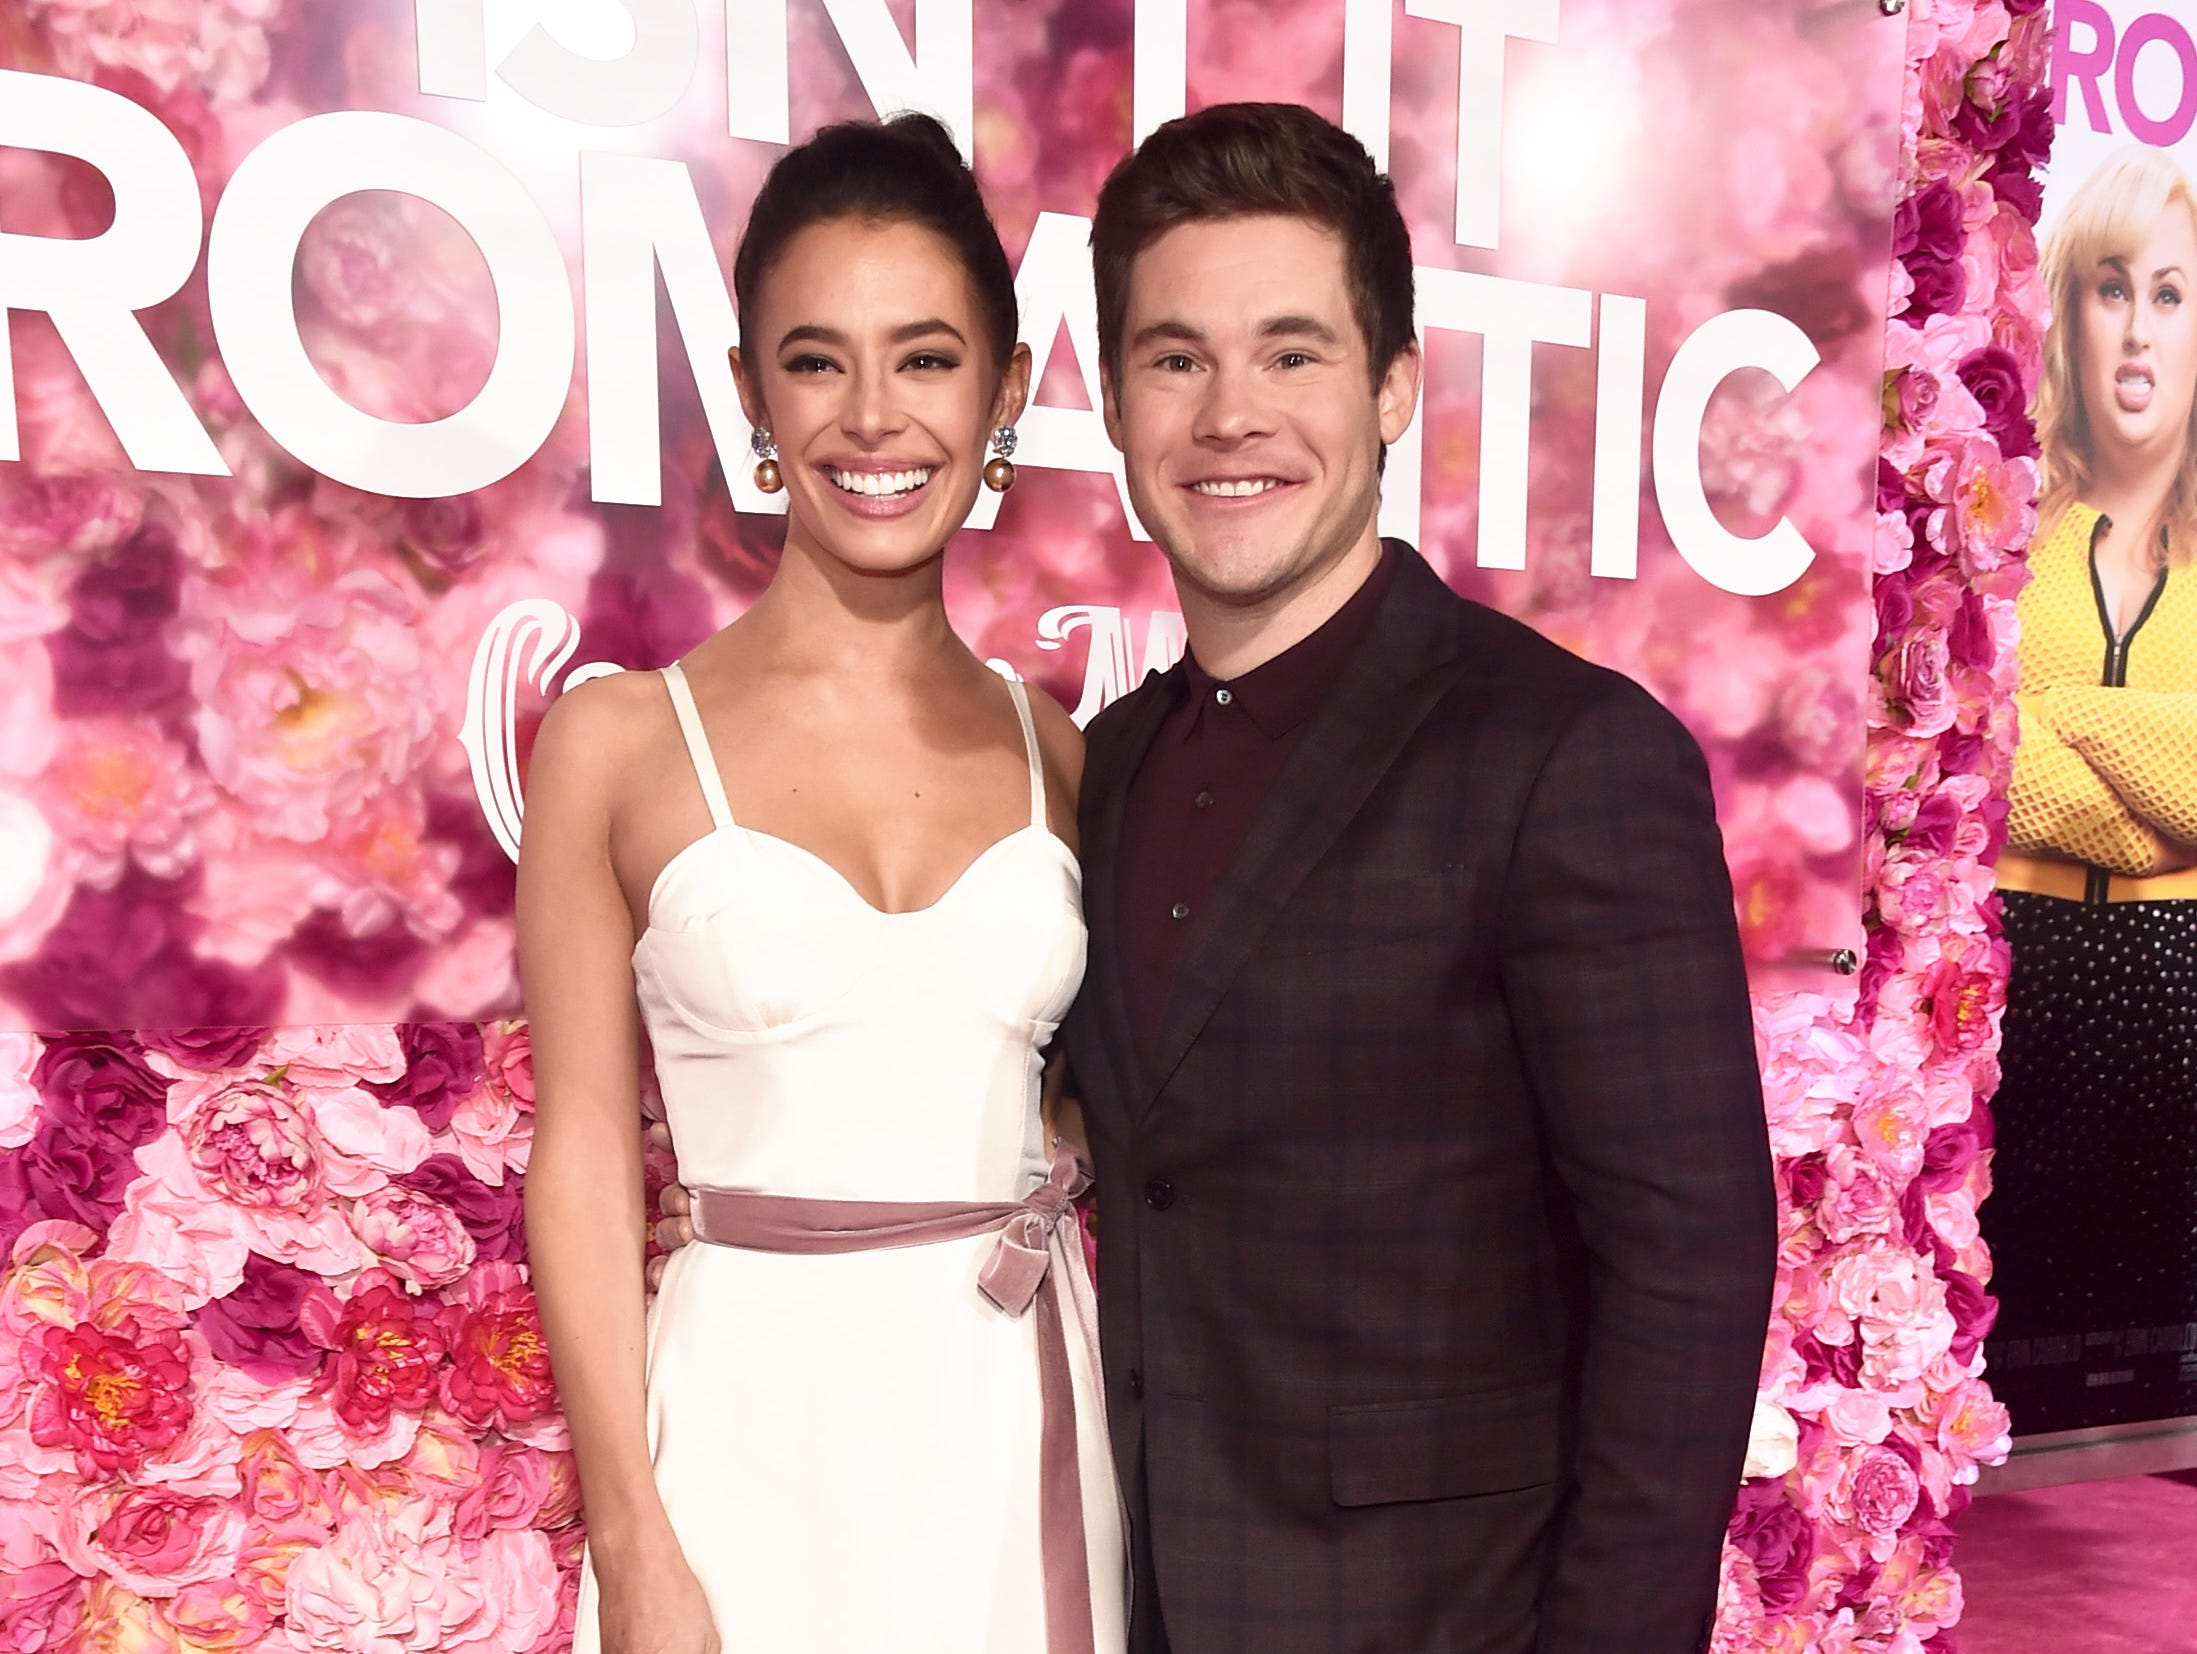 "LOS ANGELES, CALIFORNIA - FEBRUARY 11: (L-R) Chloe Bridges and Adam DeVine attend the premiere of Warner Bros. Pictures' ""Isn't It Romantic"" at The Theatre at Ace Hotel on February 11, 2019 in Los Angeles, California. (Photo by Alberto E. Rodriguez/Getty Images) ORG XMIT: 775292839 ORIG FILE ID: 1129041010"